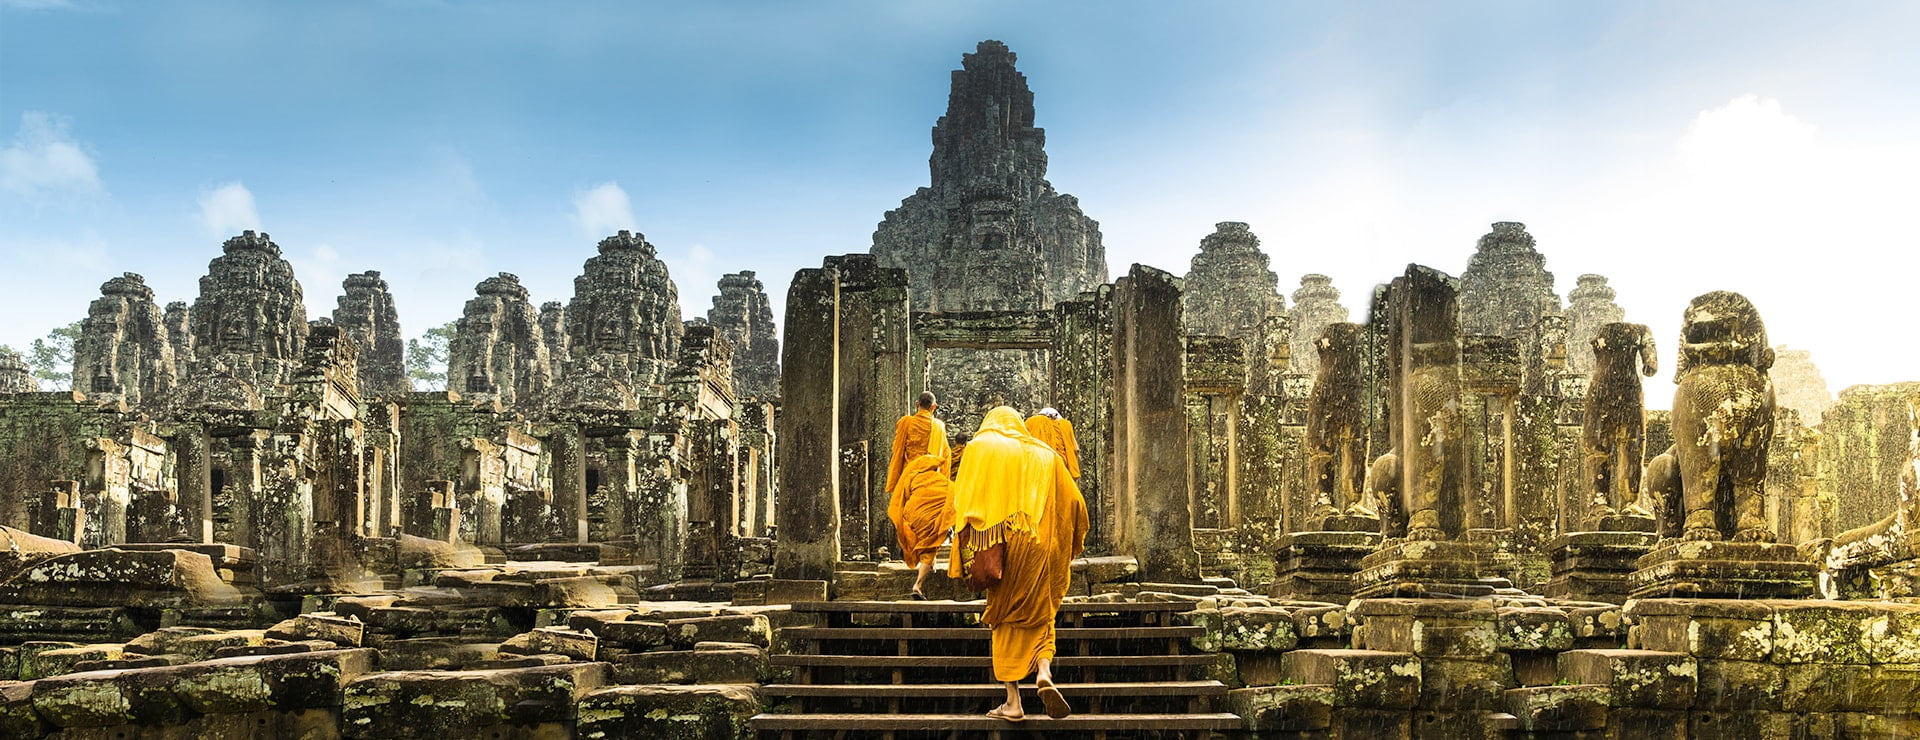 Check In These Destinations In Cambodia To Learn About Their Past